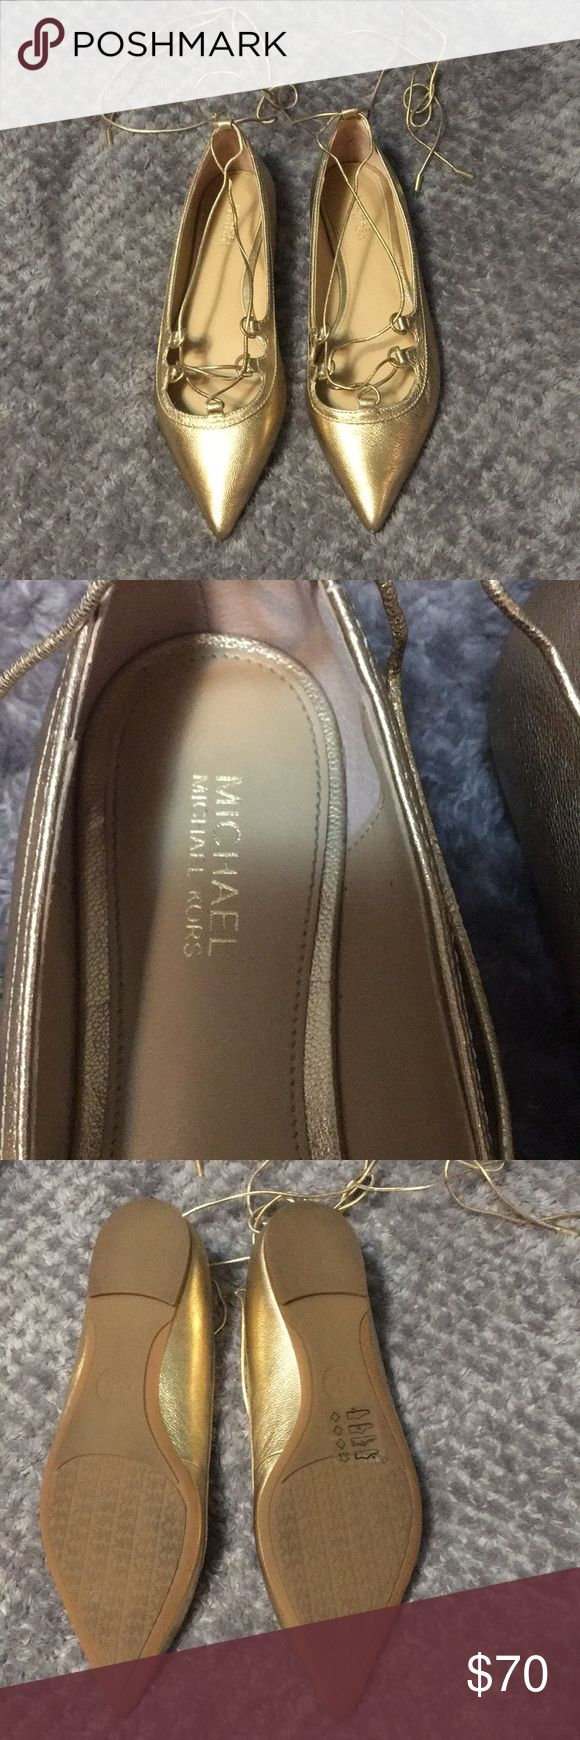 Spotted while shopping on Poshmark: Michael Kors Gold Lace Up Flats (Tabby Flat)…